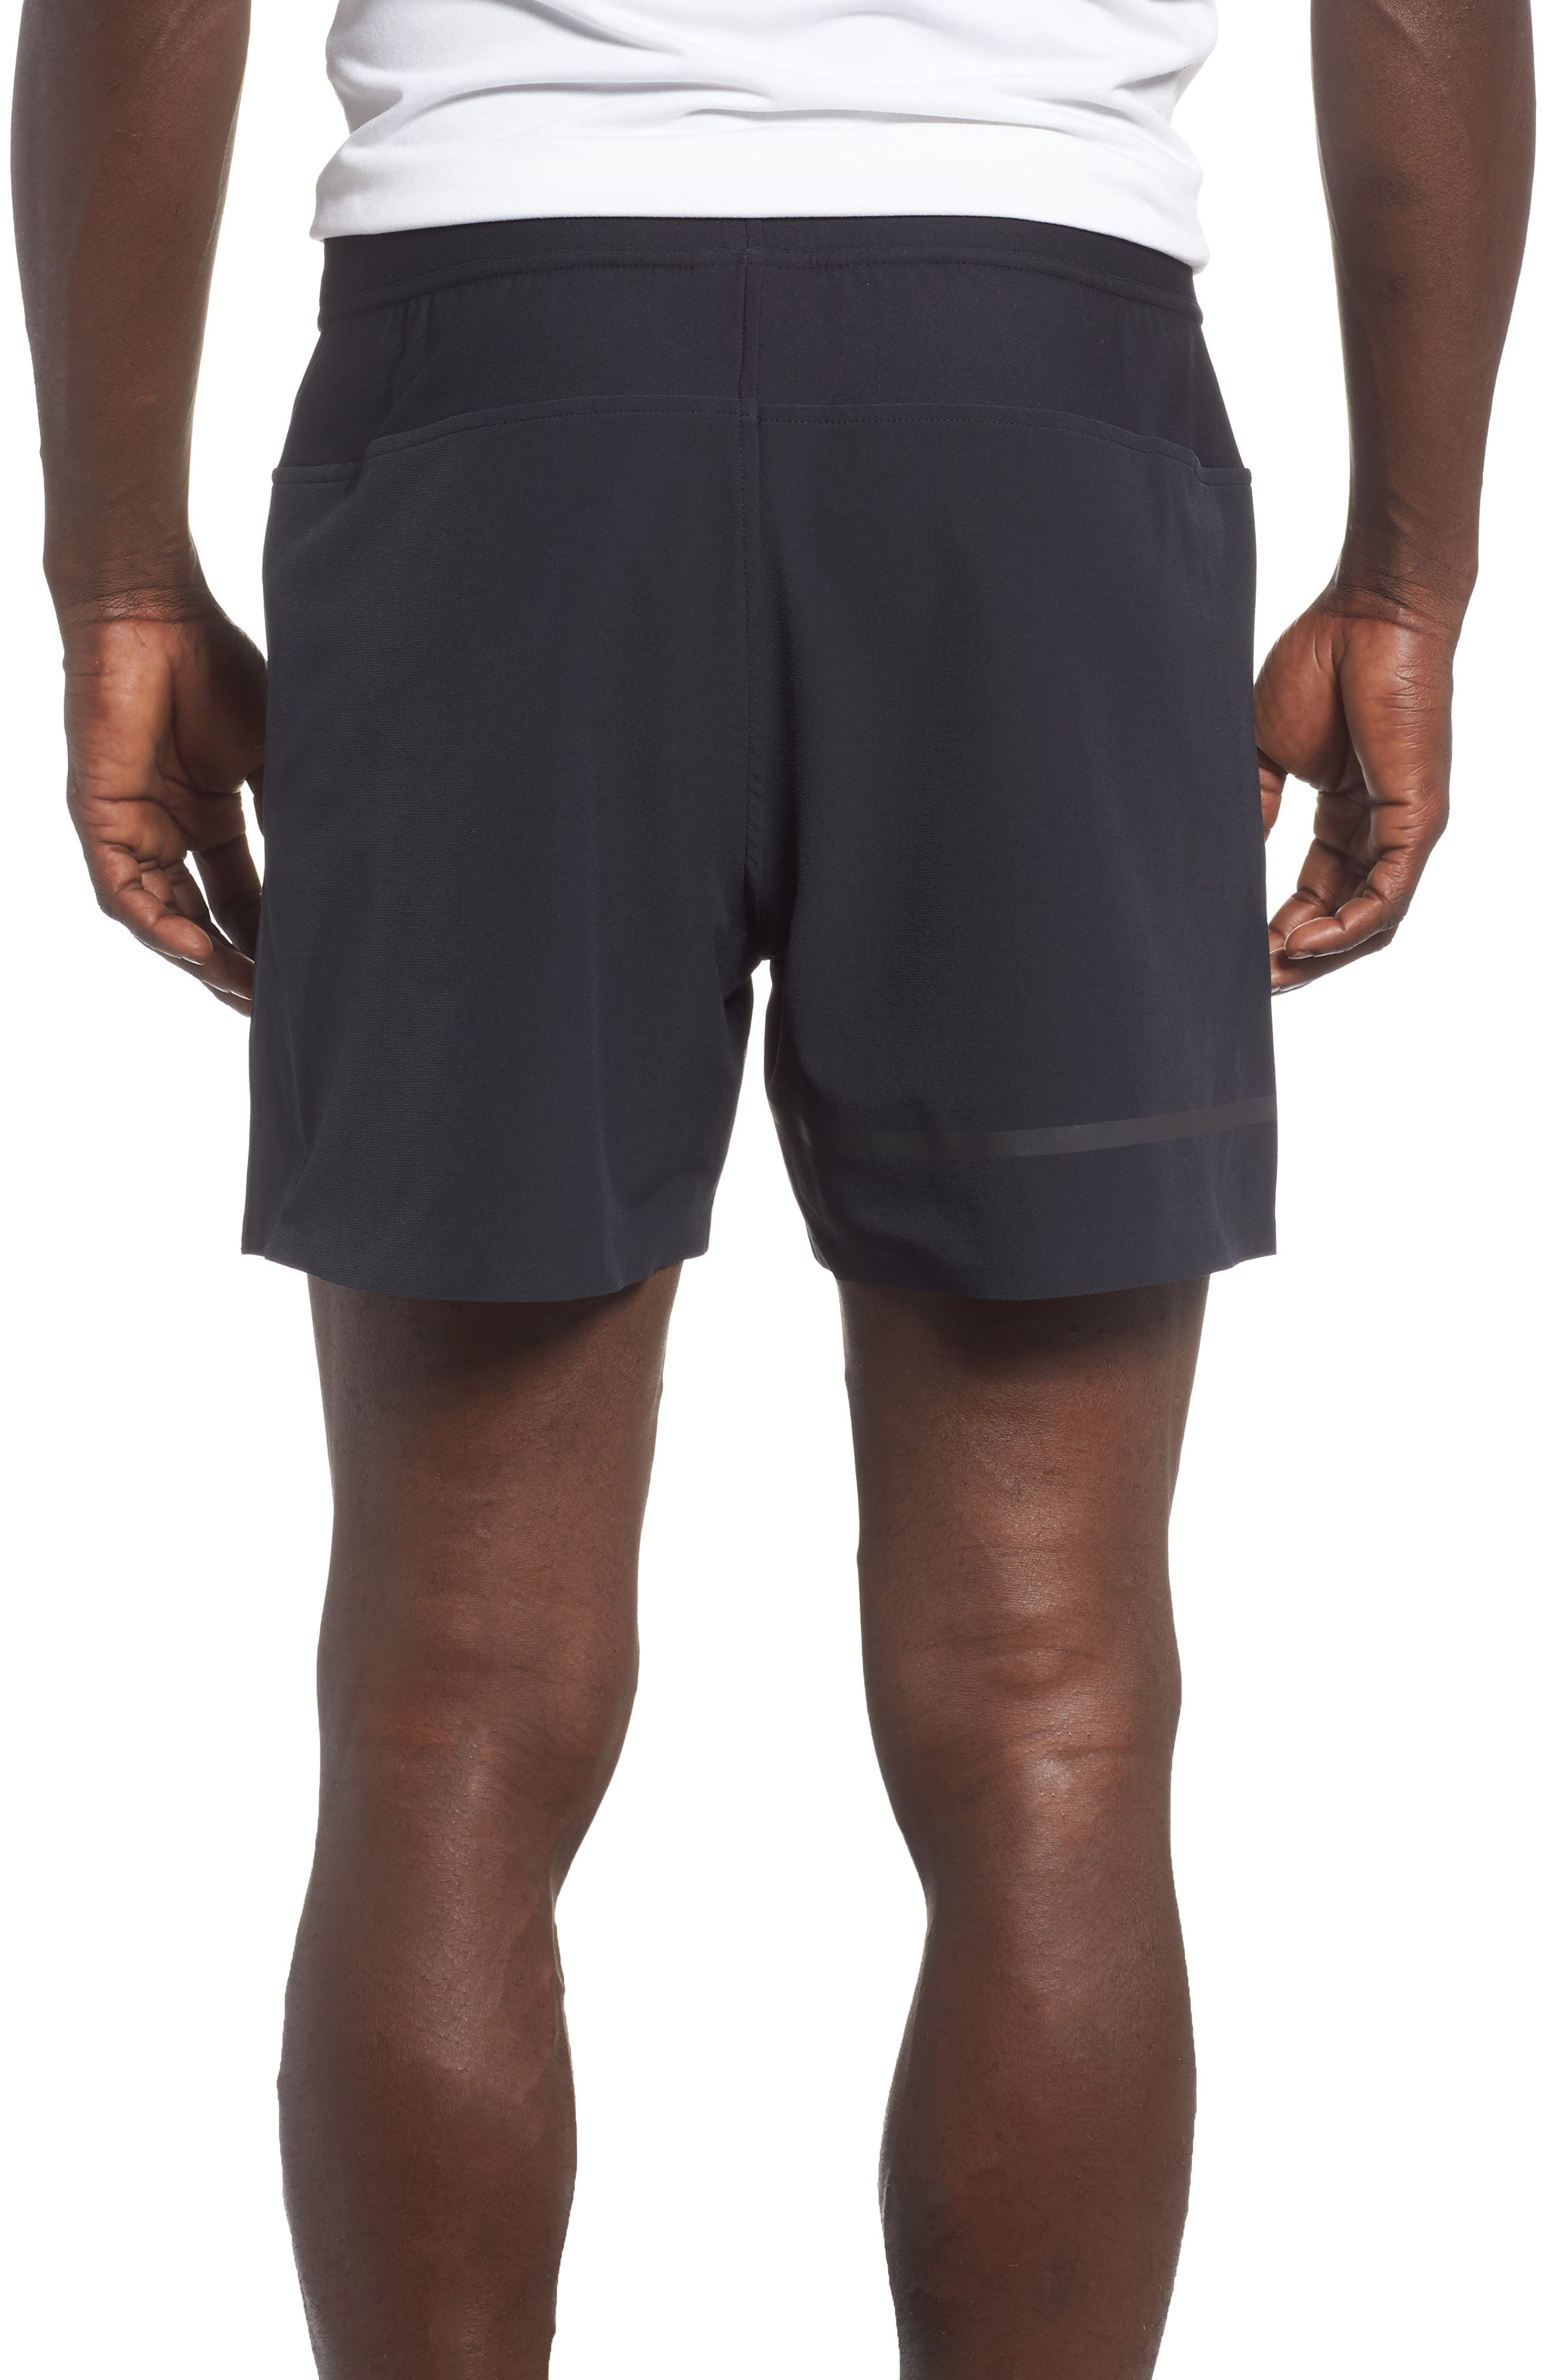 Perpetual Fitted Shorts,                             Alternate thumbnail 2, color,                             001